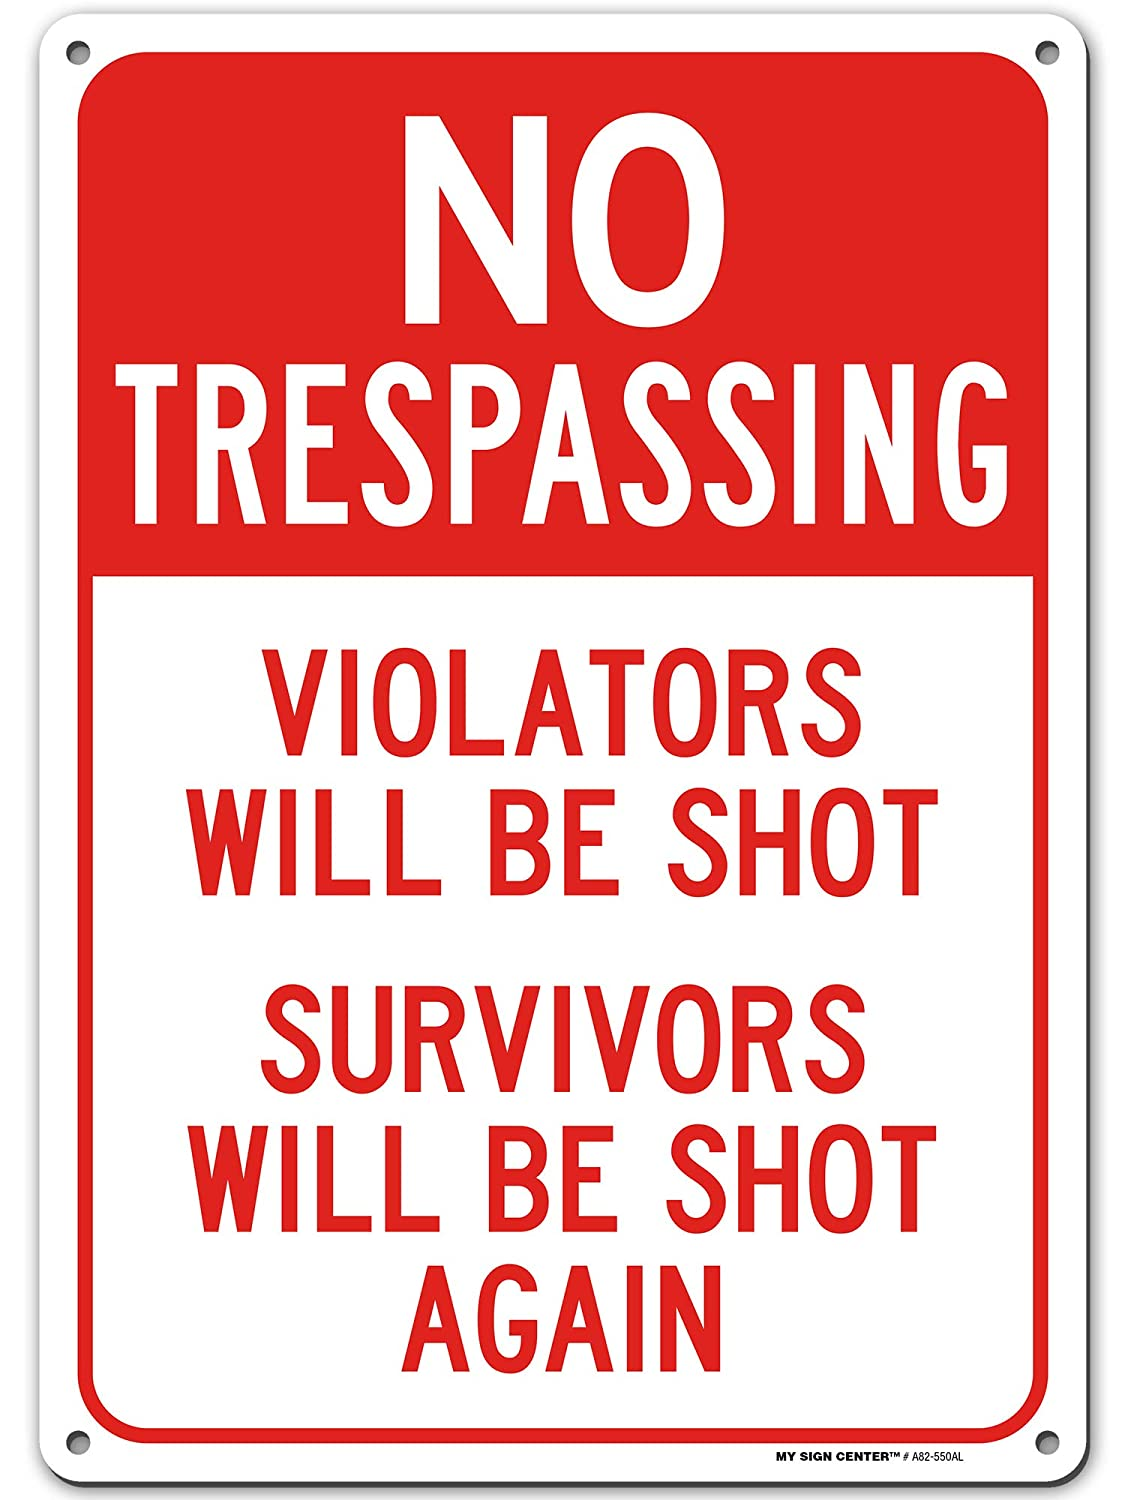 """No Trespassing Violators Will Be Shot Survivors Will Be Shot Again Funny Sign 10"""" x 14"""" Industrial Grade Aluminum, Easy Mounting, Rust-Free/Fade Resistance, Indoor/Outdoor, USA Made by MY SIGN CENTER"""